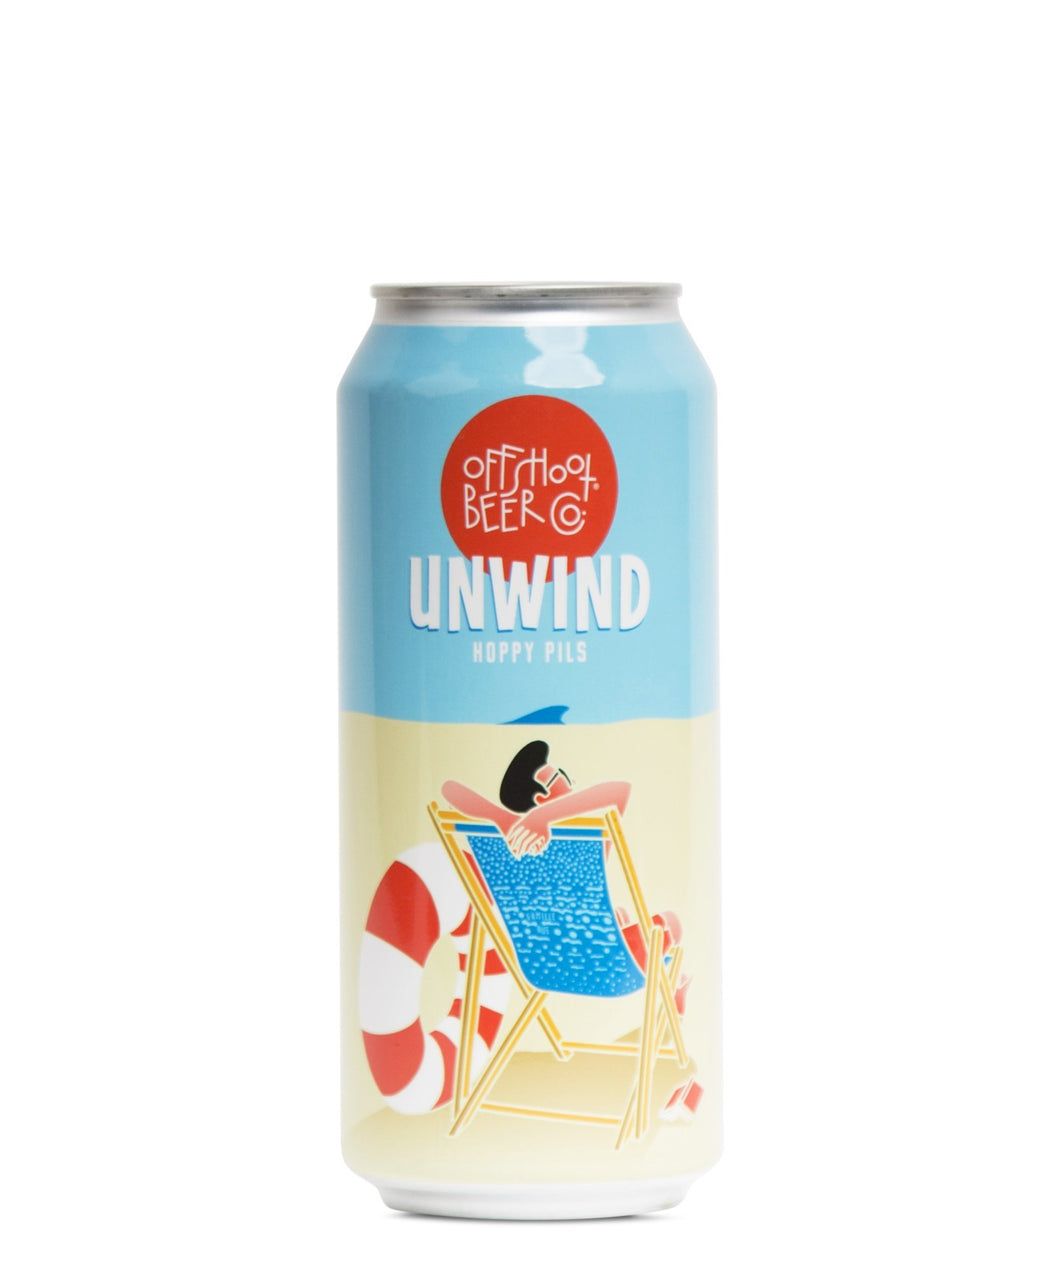 Unwind (You Earned This Hoppy Pils)